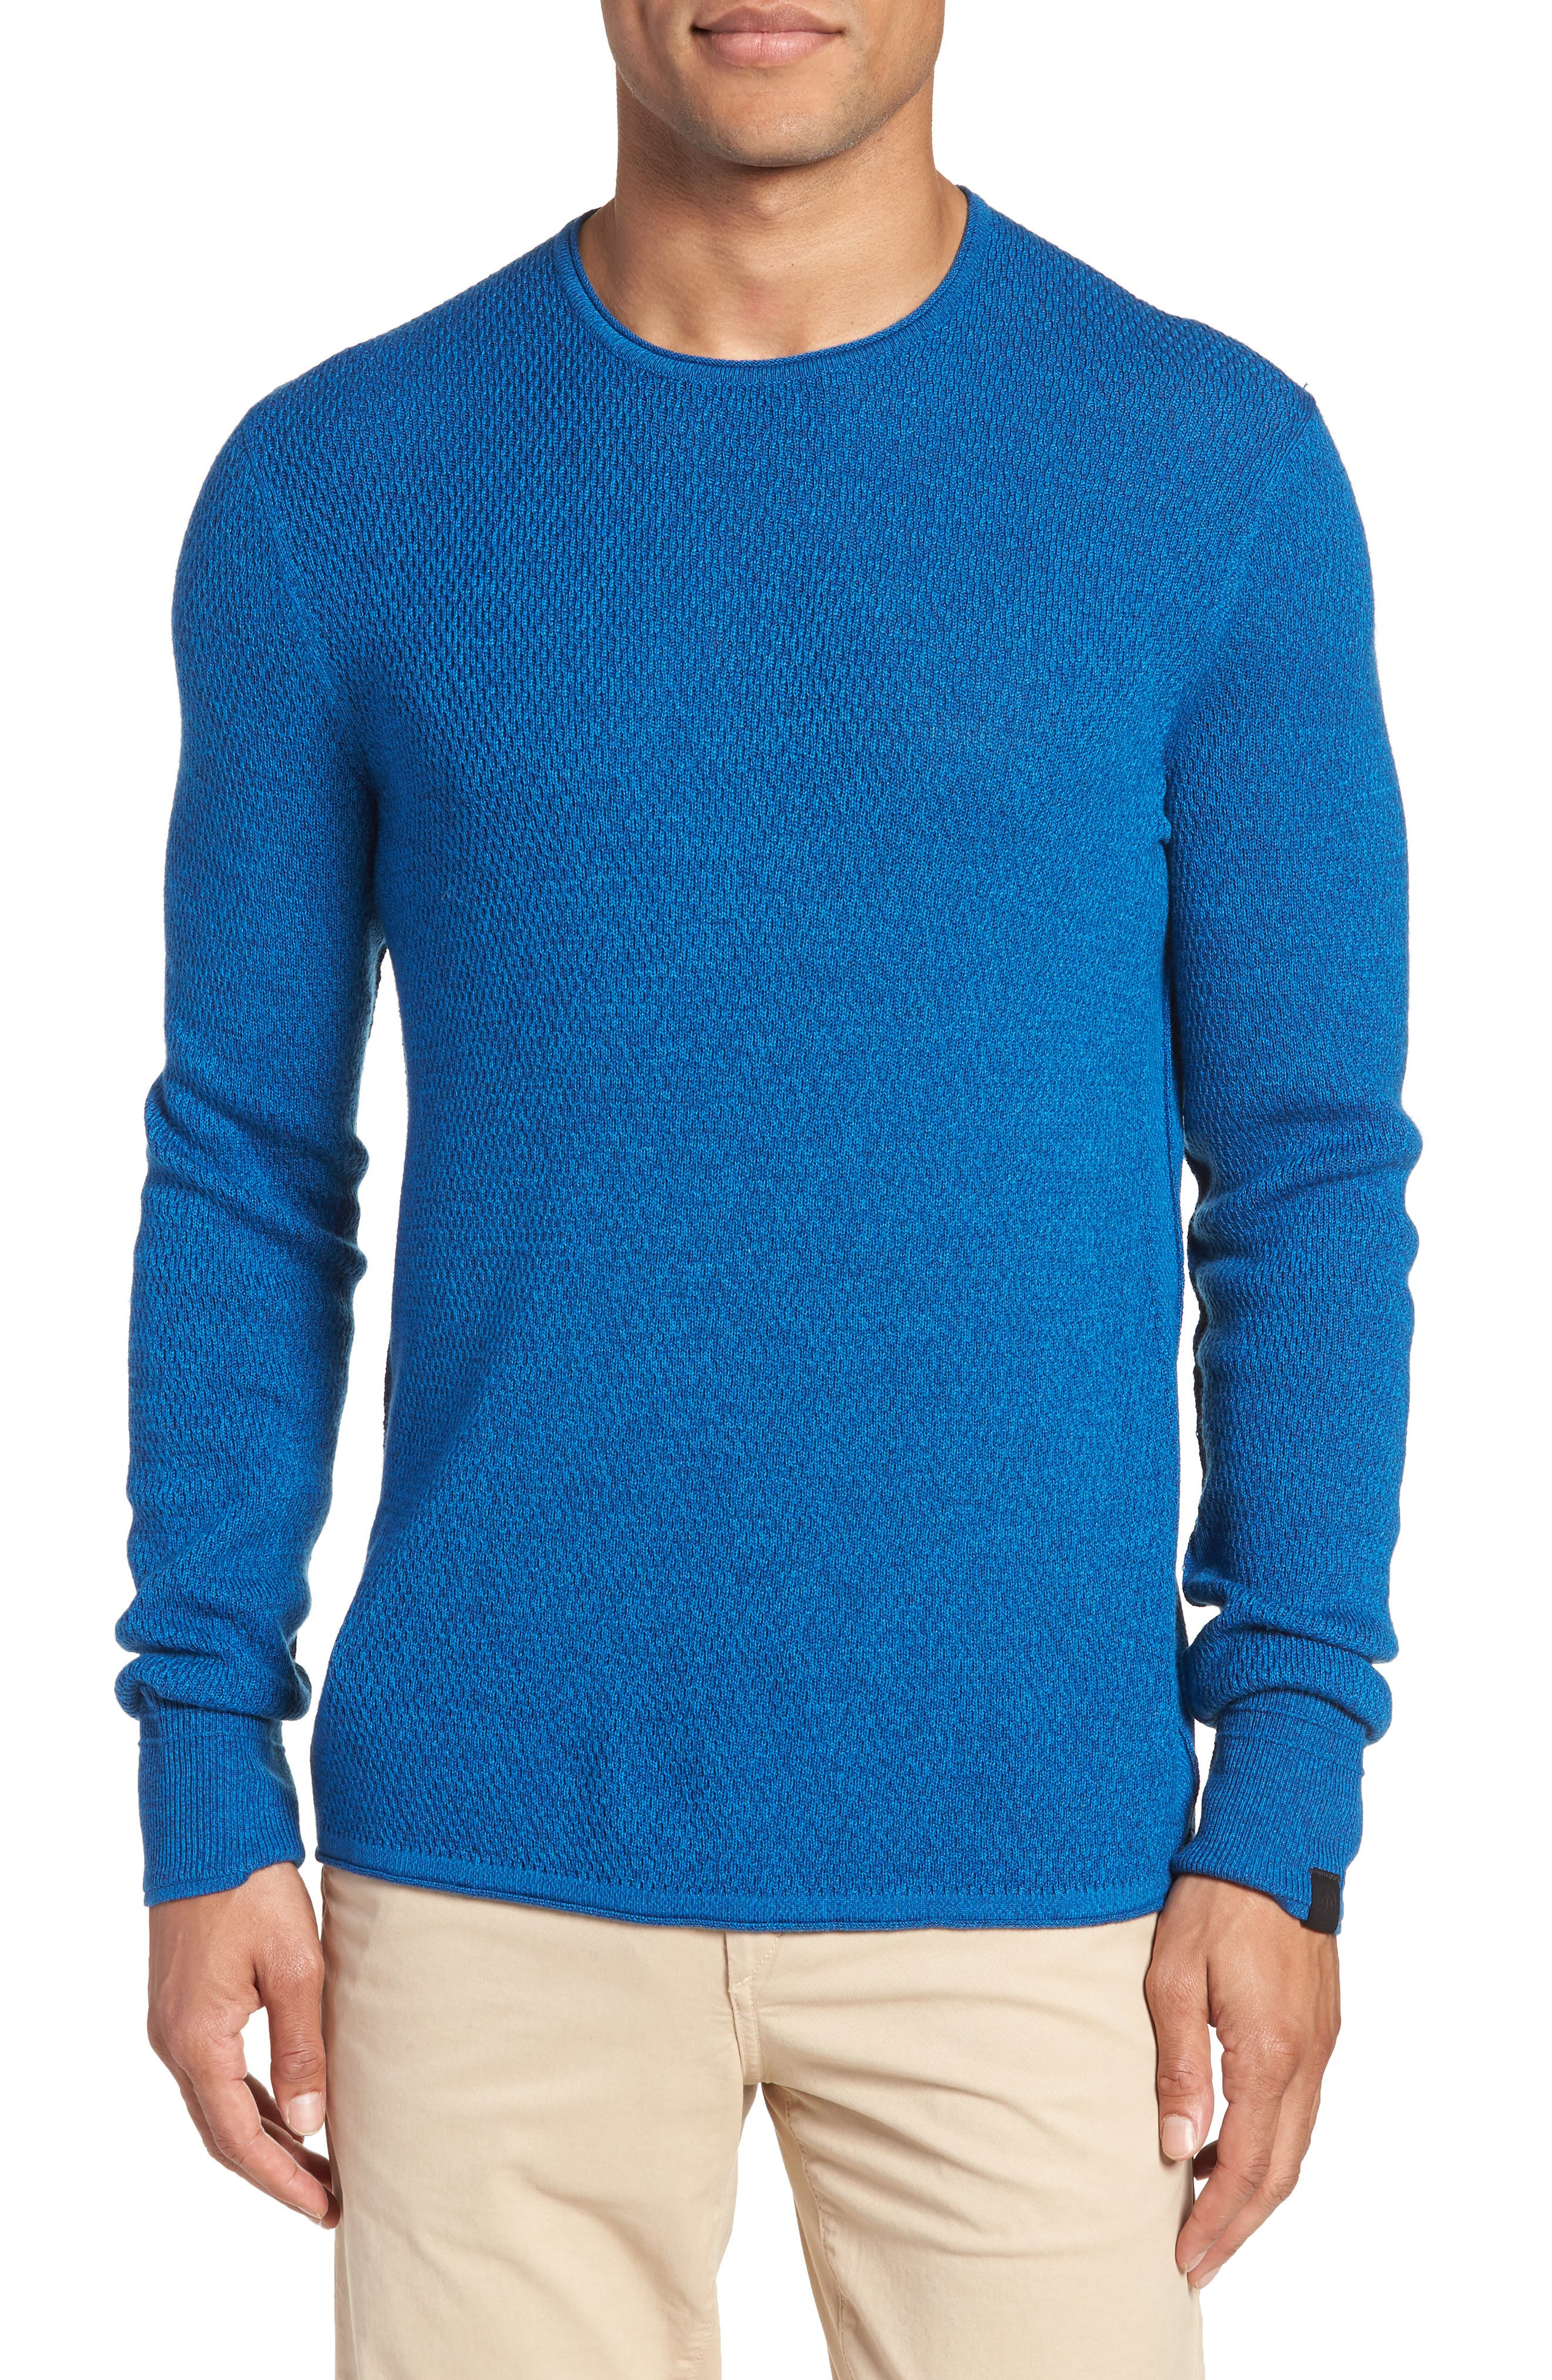 Gregory Wool Blend Crewneck Sweater,                             Main thumbnail 1, color,                             Bright Blue